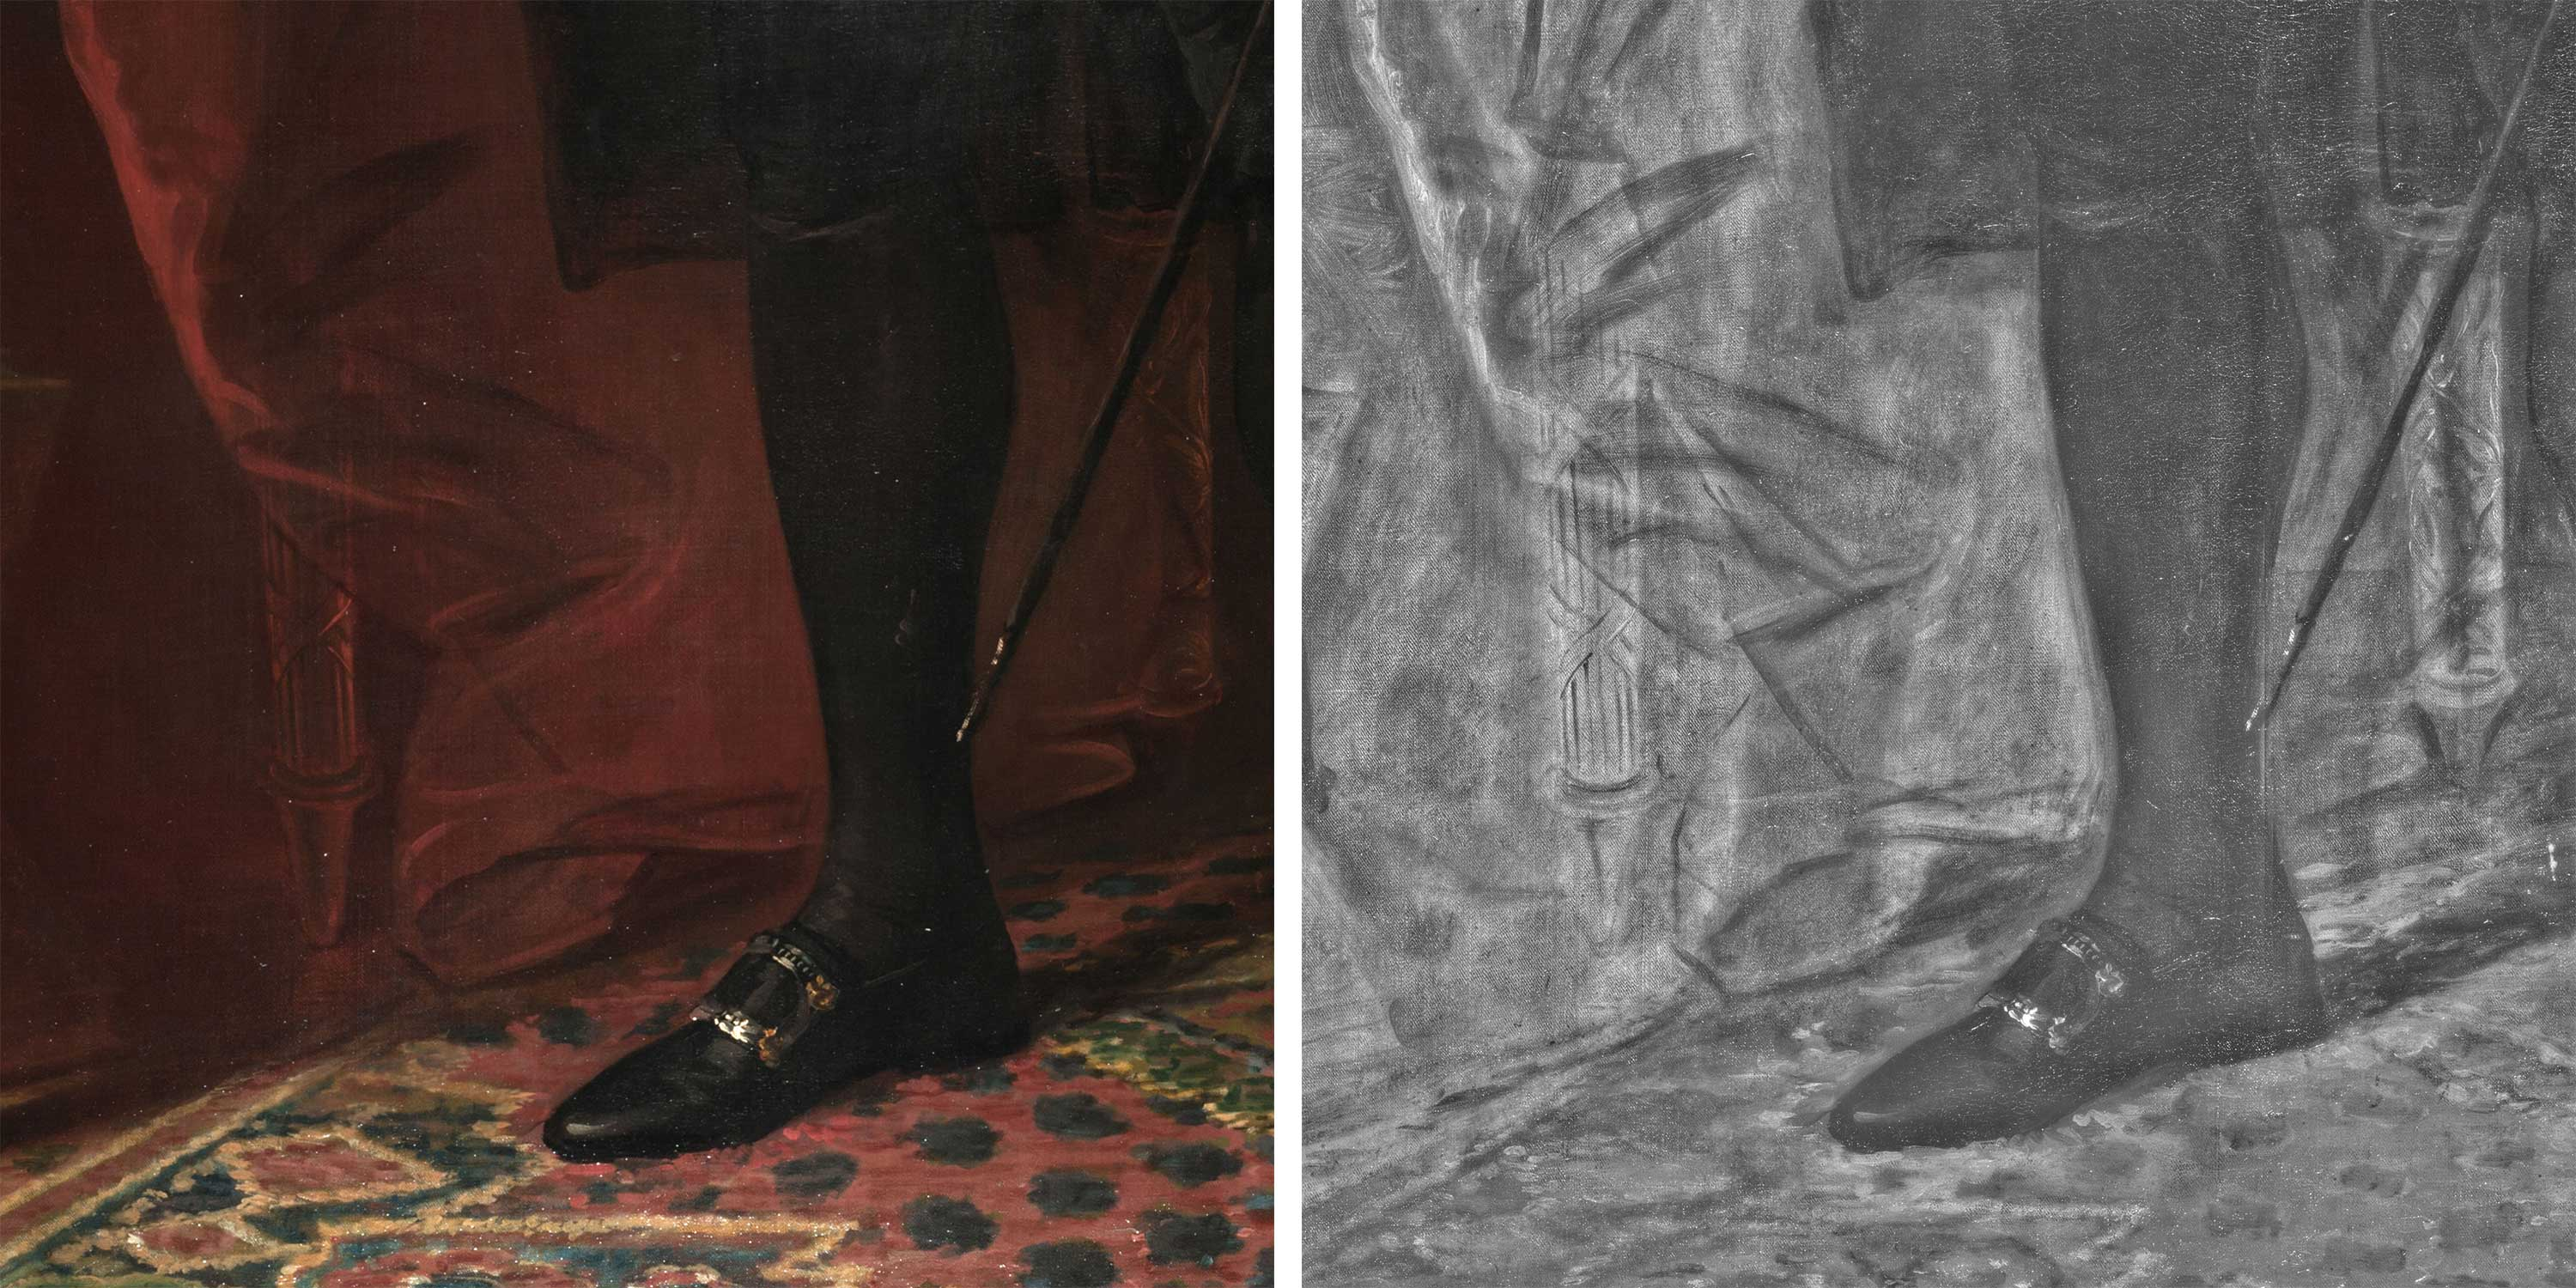 Two images of a man's painted foot